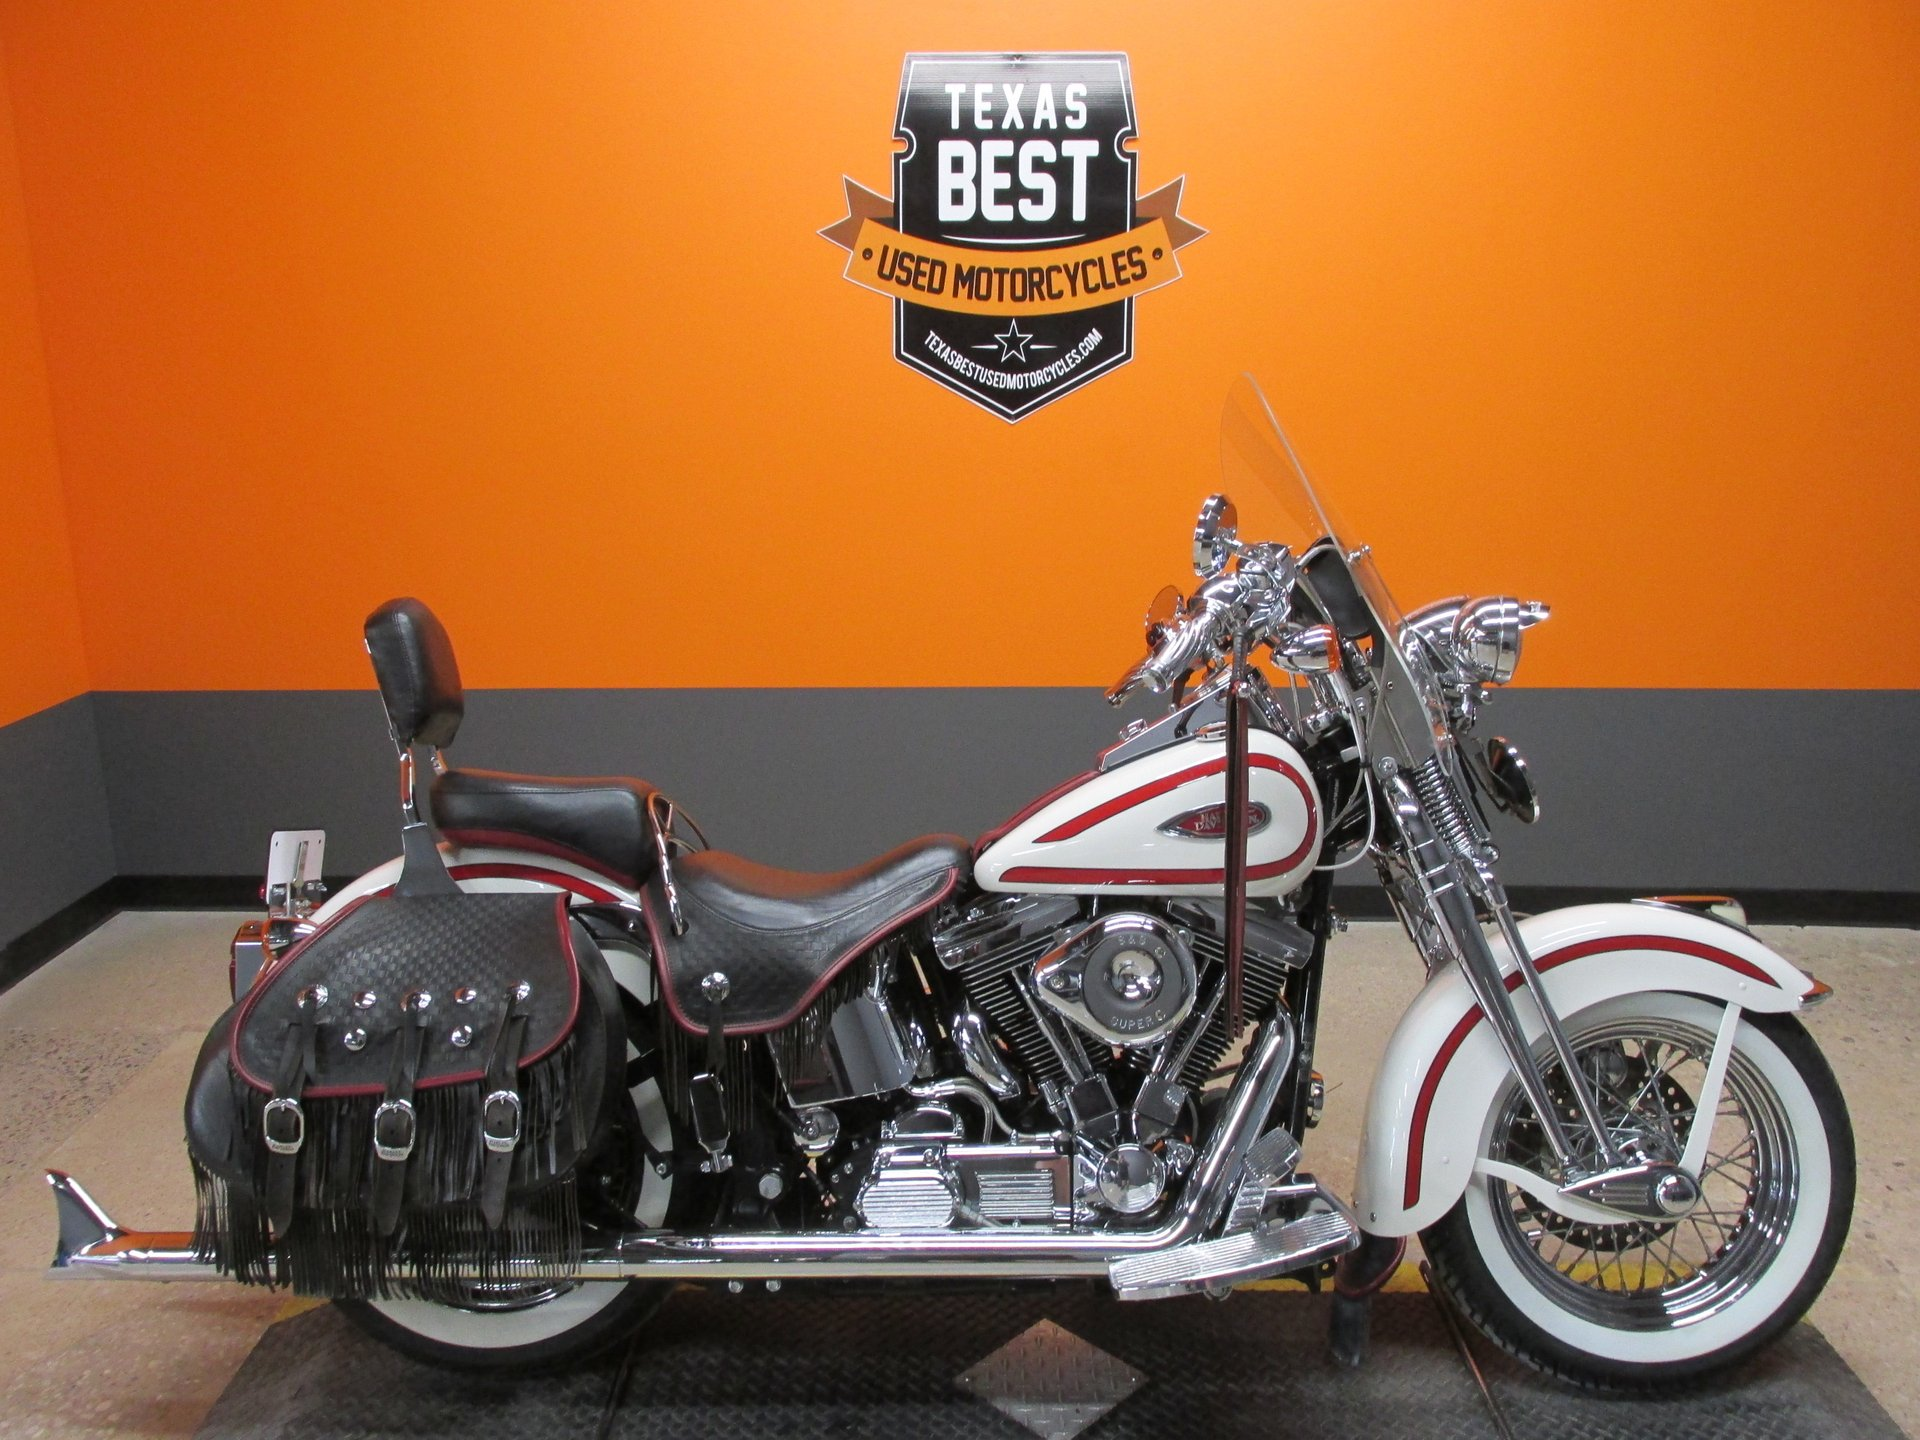 For Sale 1997 Harley-Davidson Softail Heritage Springer